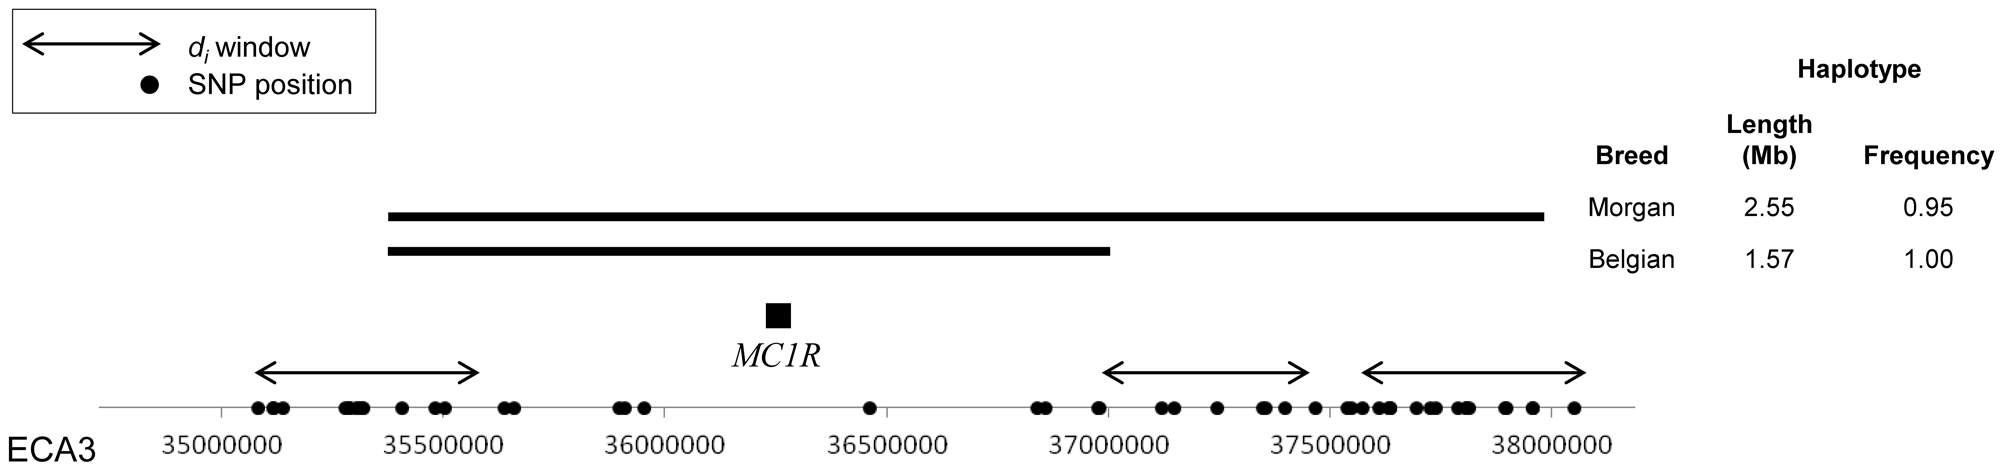 Haplotypes surrounding the <i>MC1R</i> locus in the Morgan and Belgian.